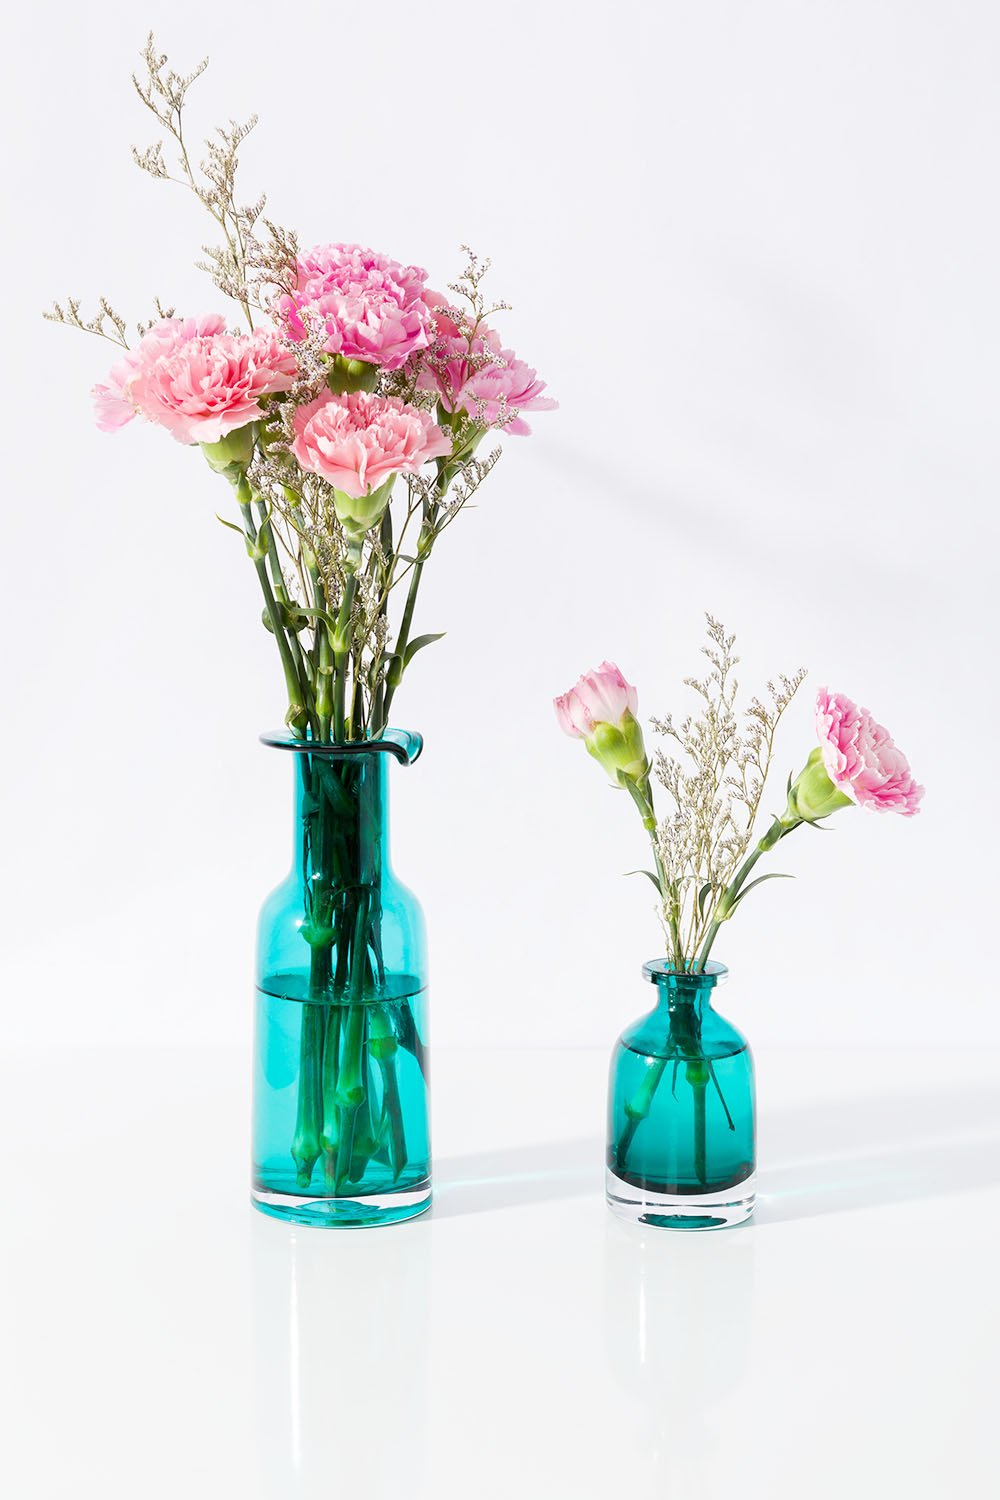 Best Mkono Blue Flower Vase Decorative Art Glass Home Decor Set This Month